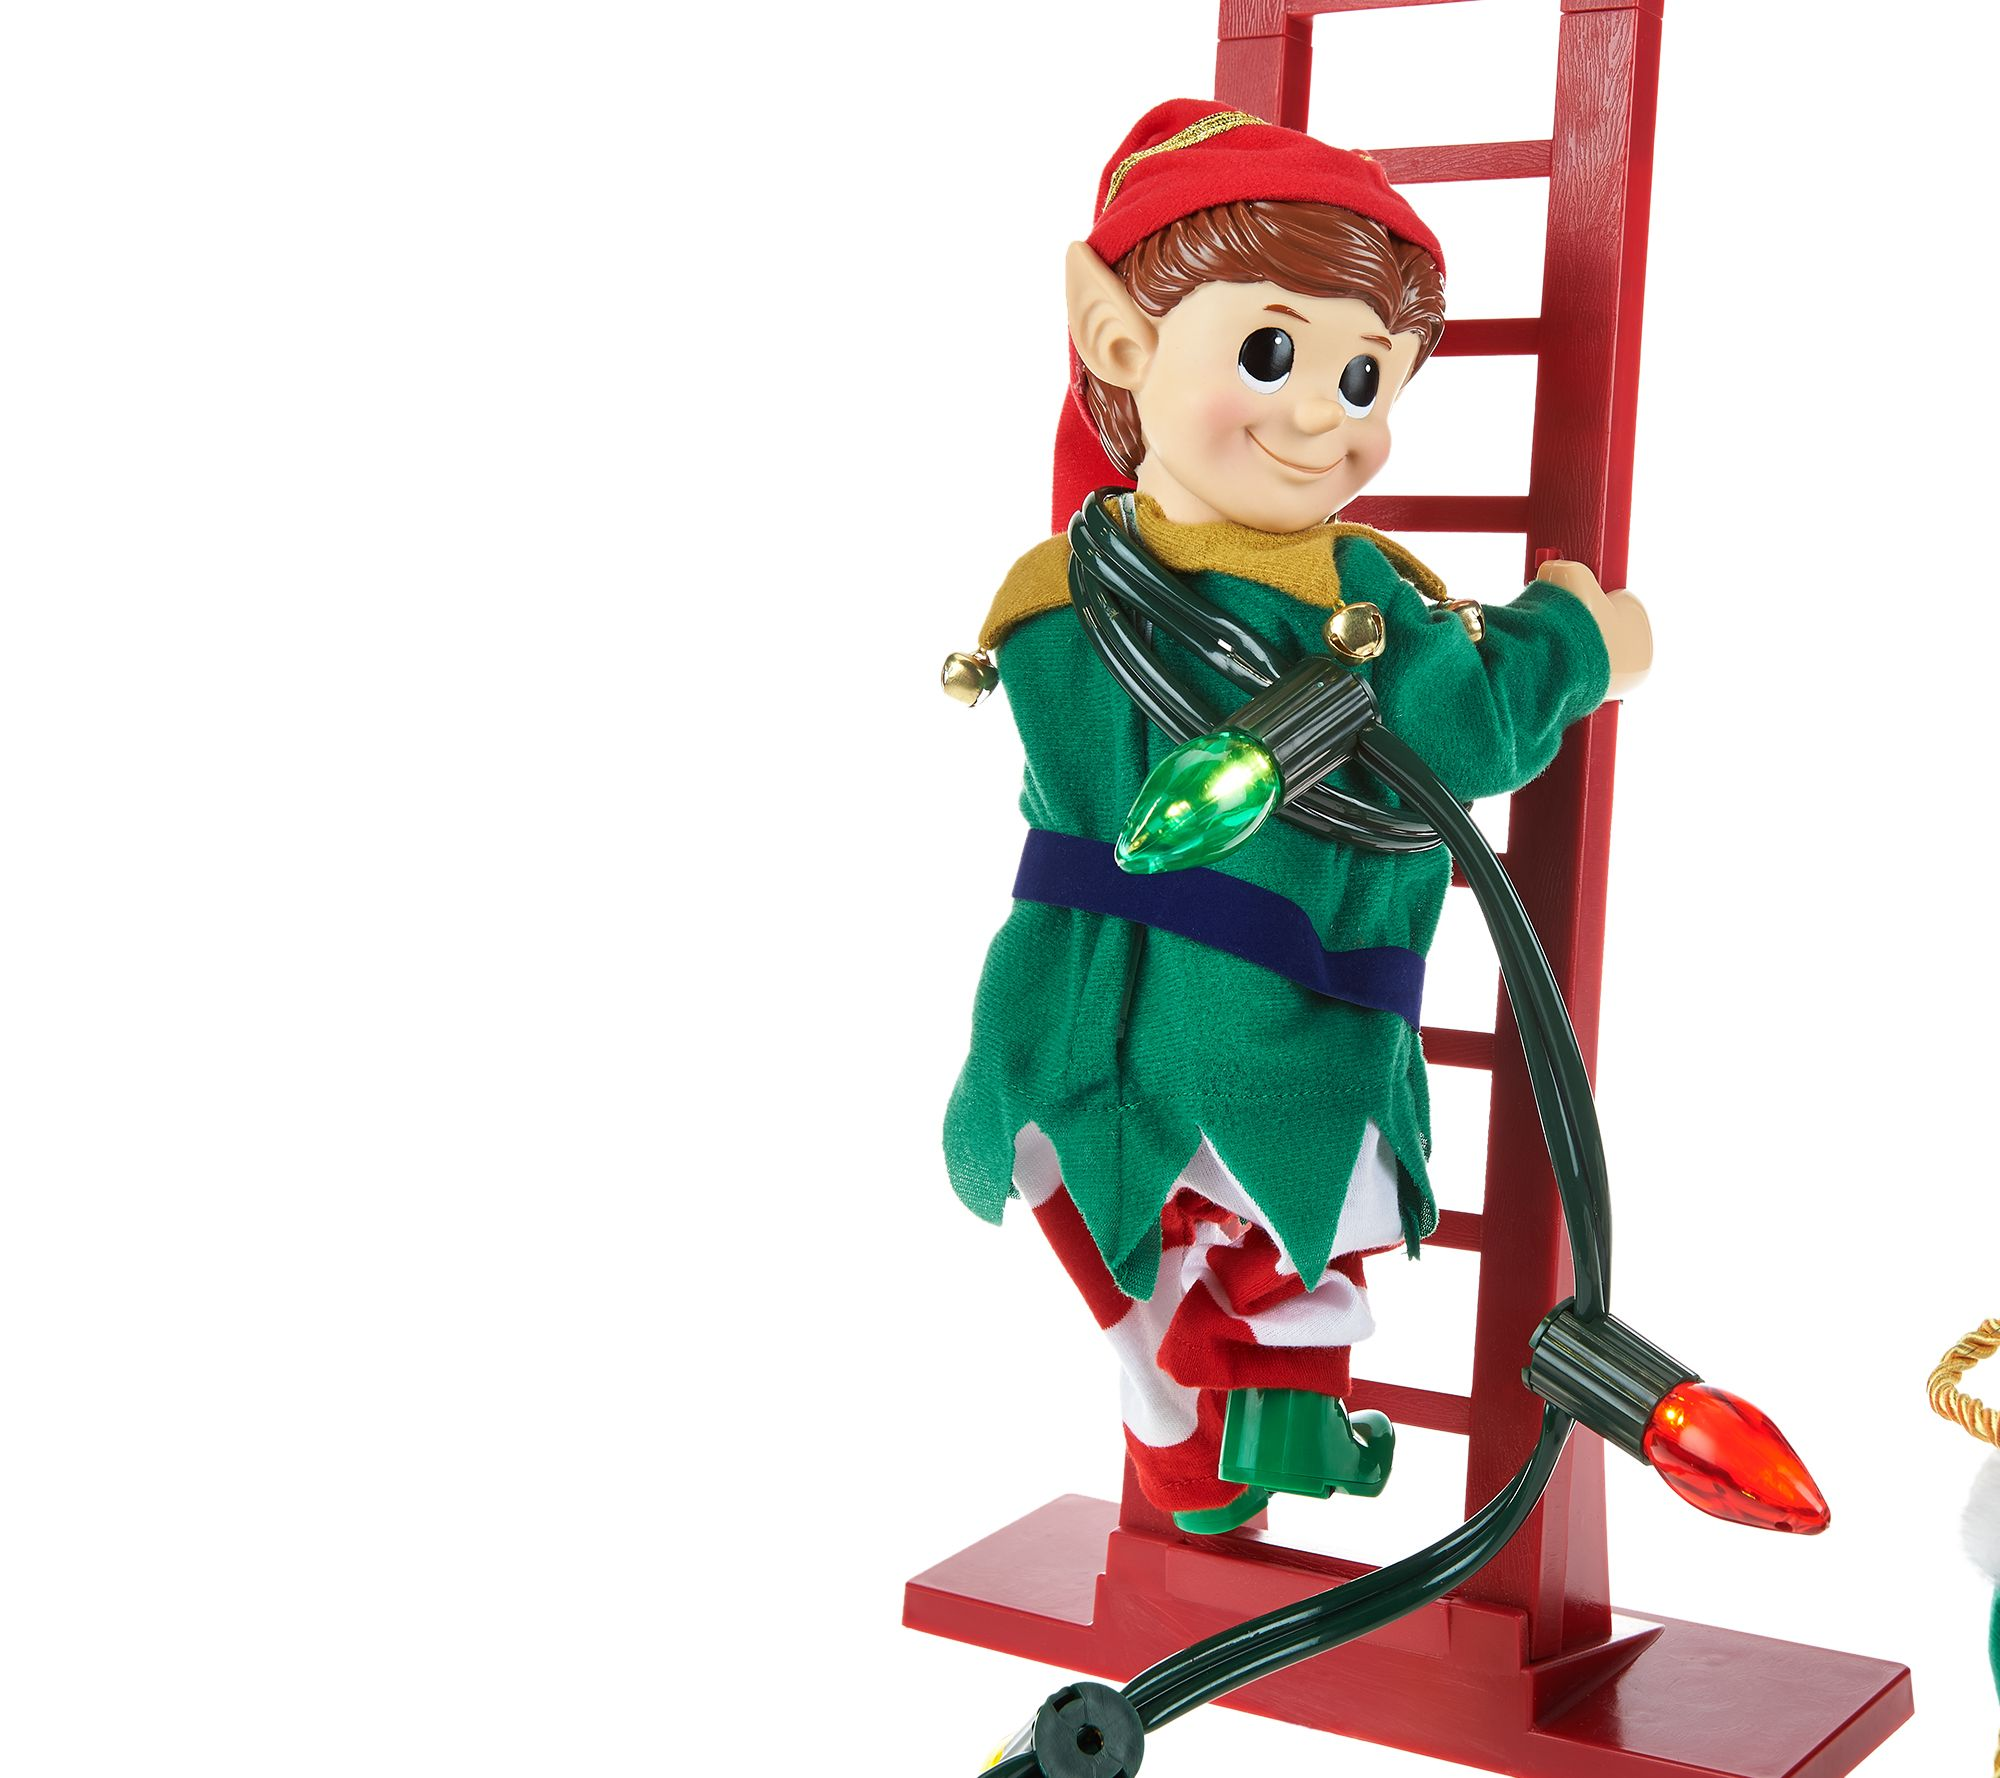 mr christmas animated and musical stepping elf page 1 qvccom - Animated Christmas Elves Decorations